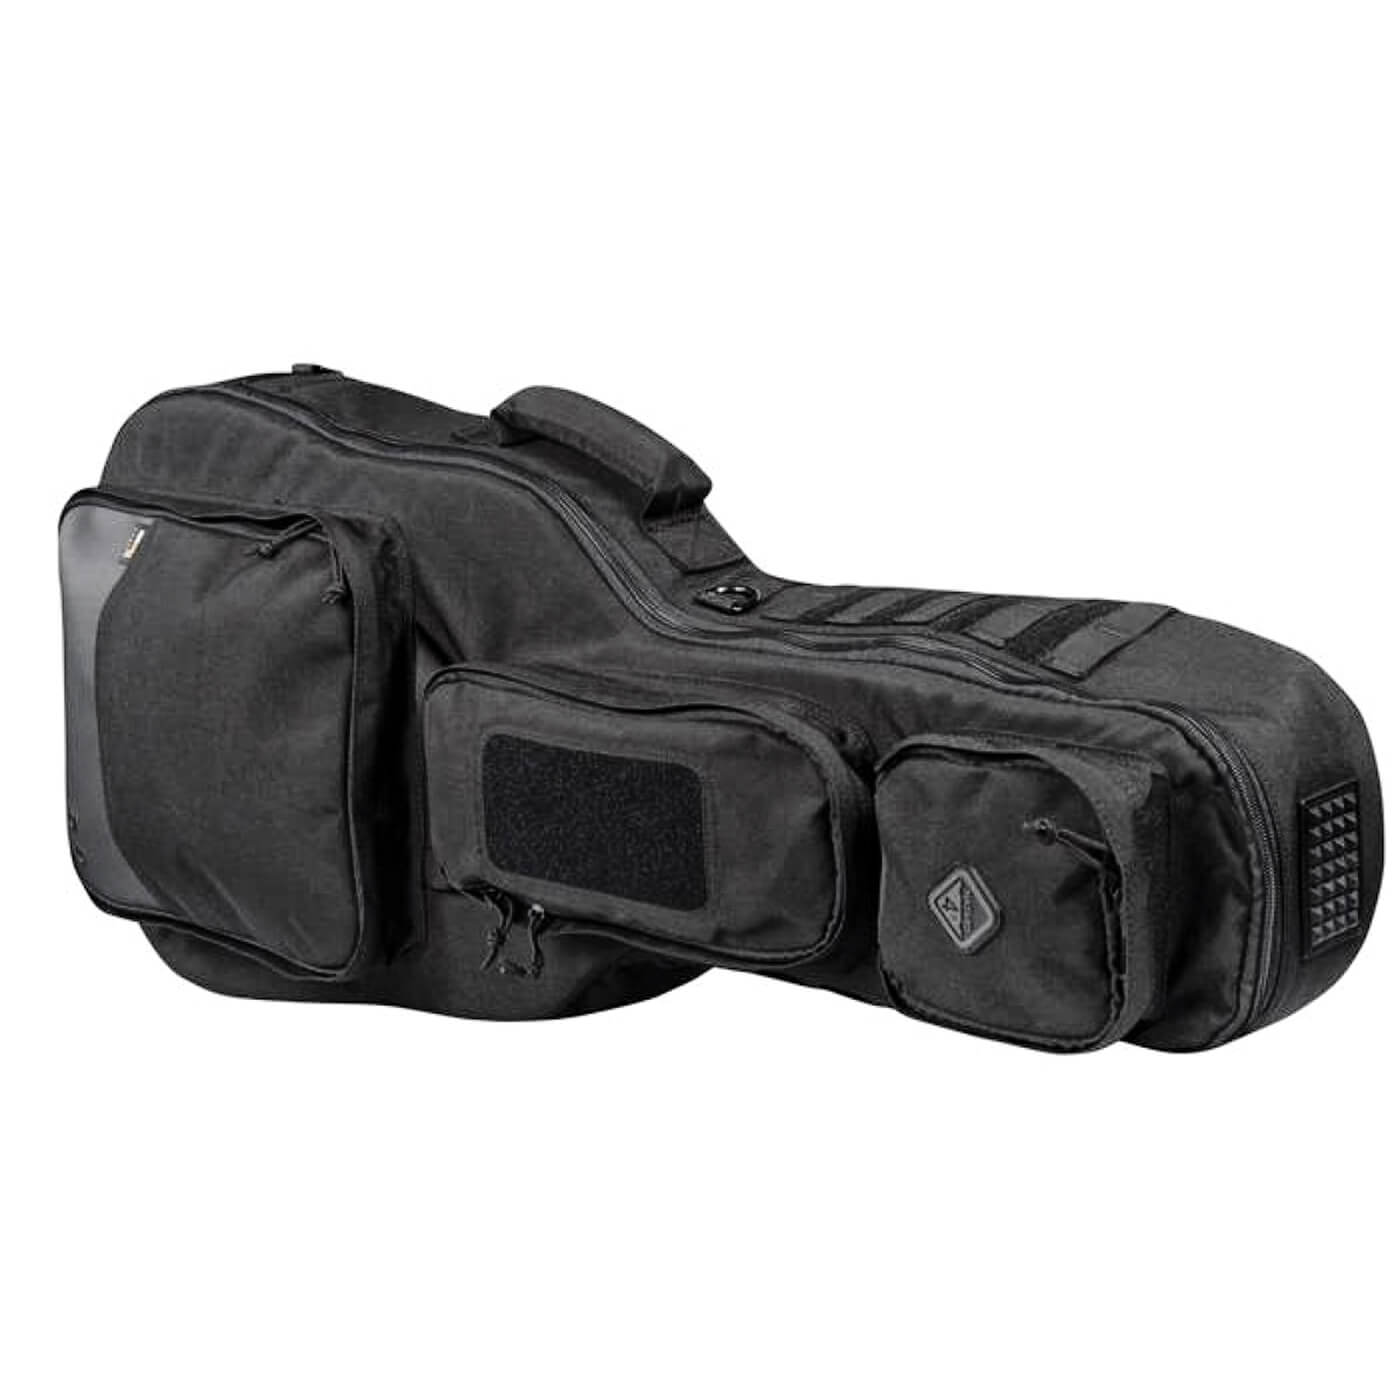 Hazard4 Battle Axe tactical concealed carry bag